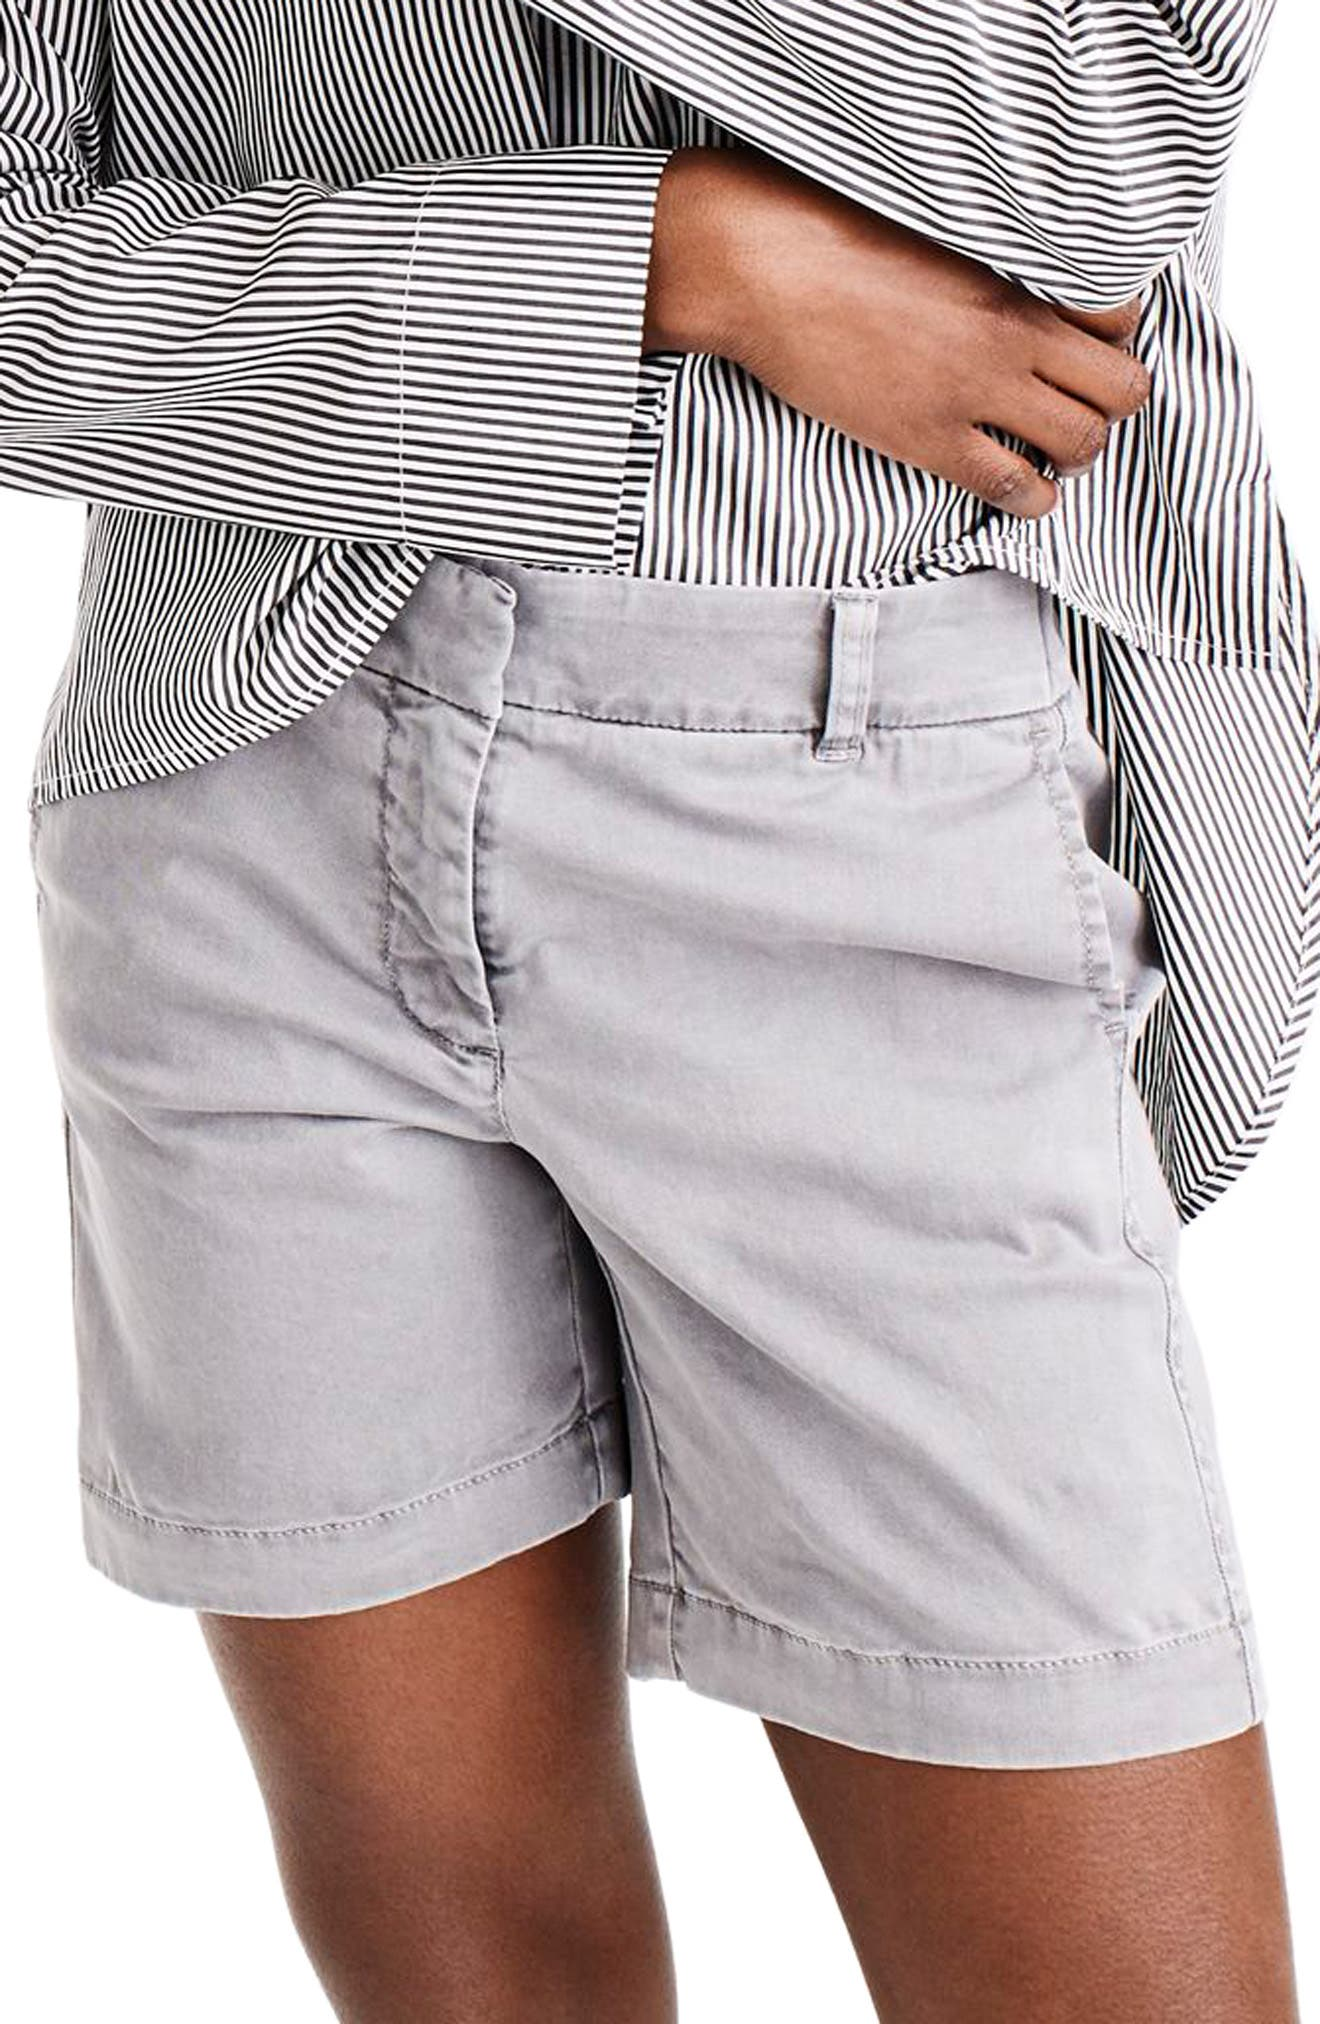 J.Crew Stretch Cotton Chino Shorts